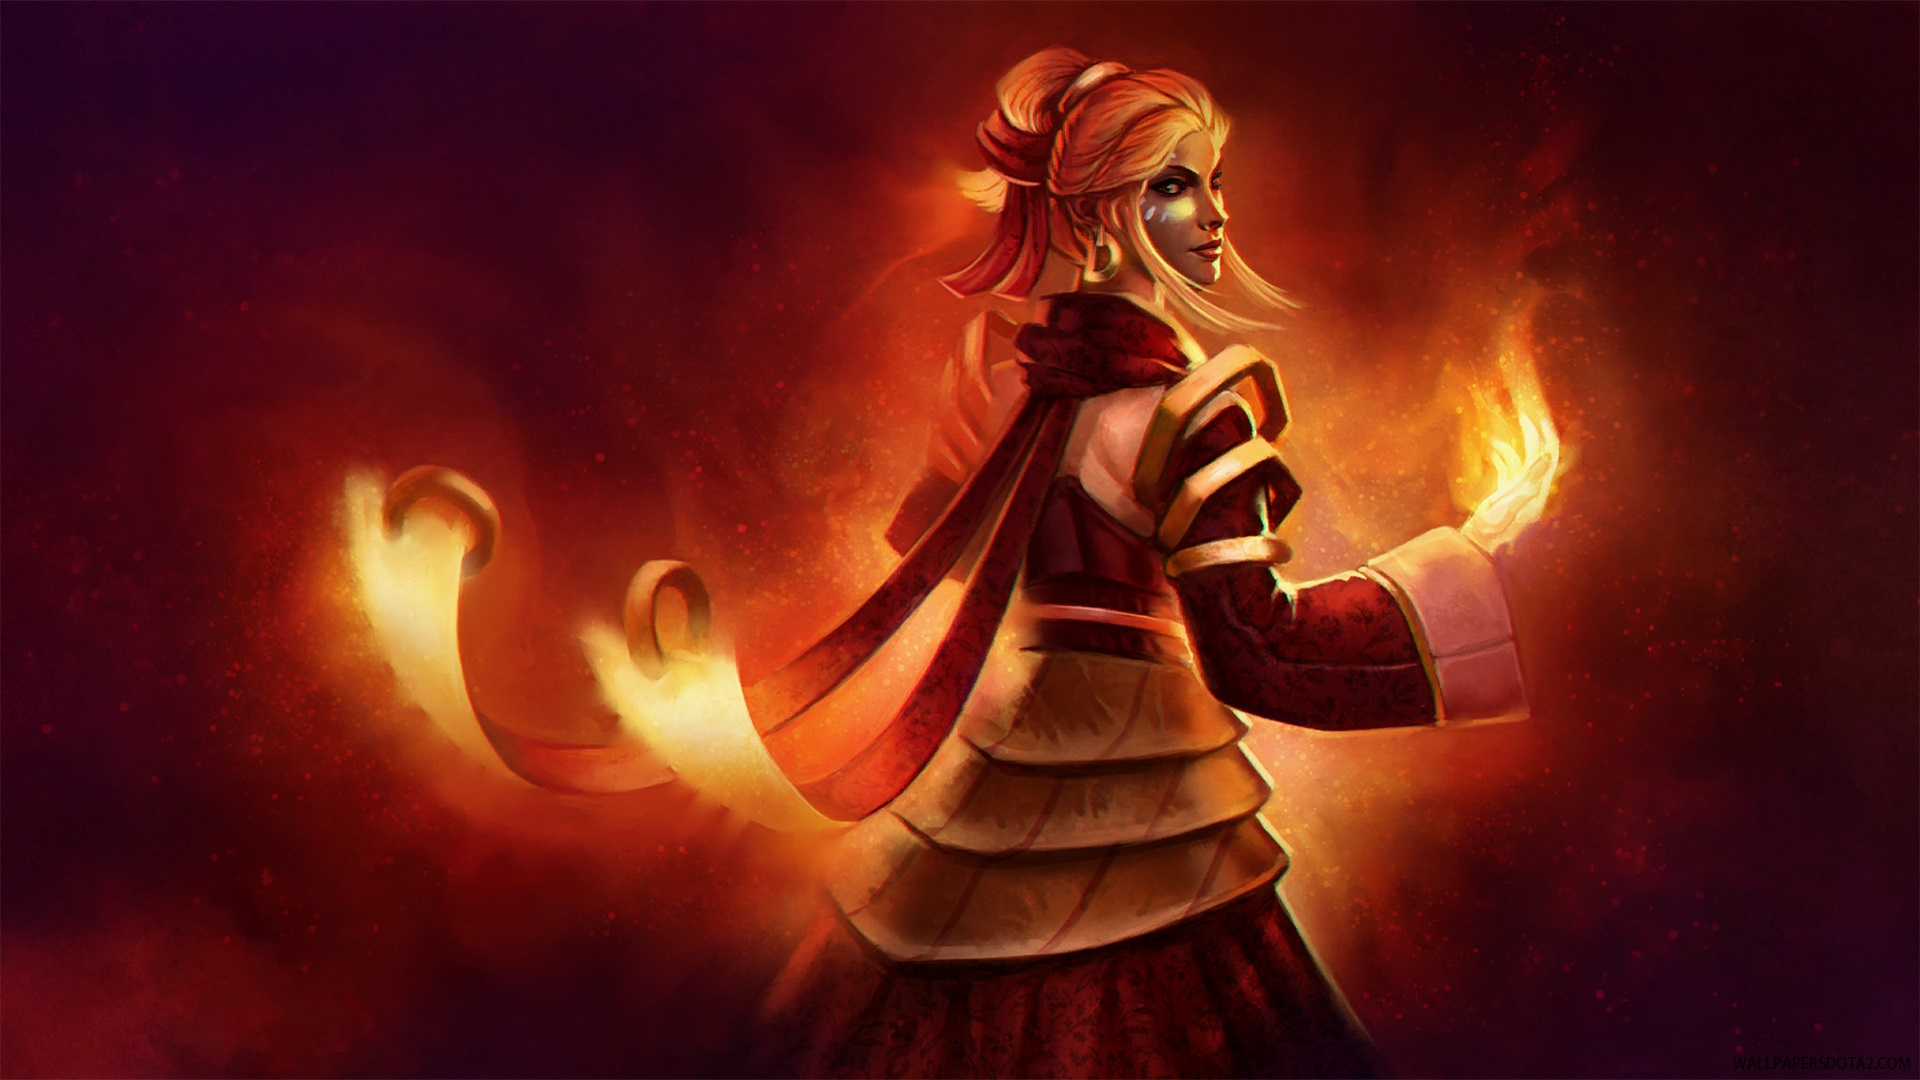 Lina Everlasting Heat обои для стола Dota 2